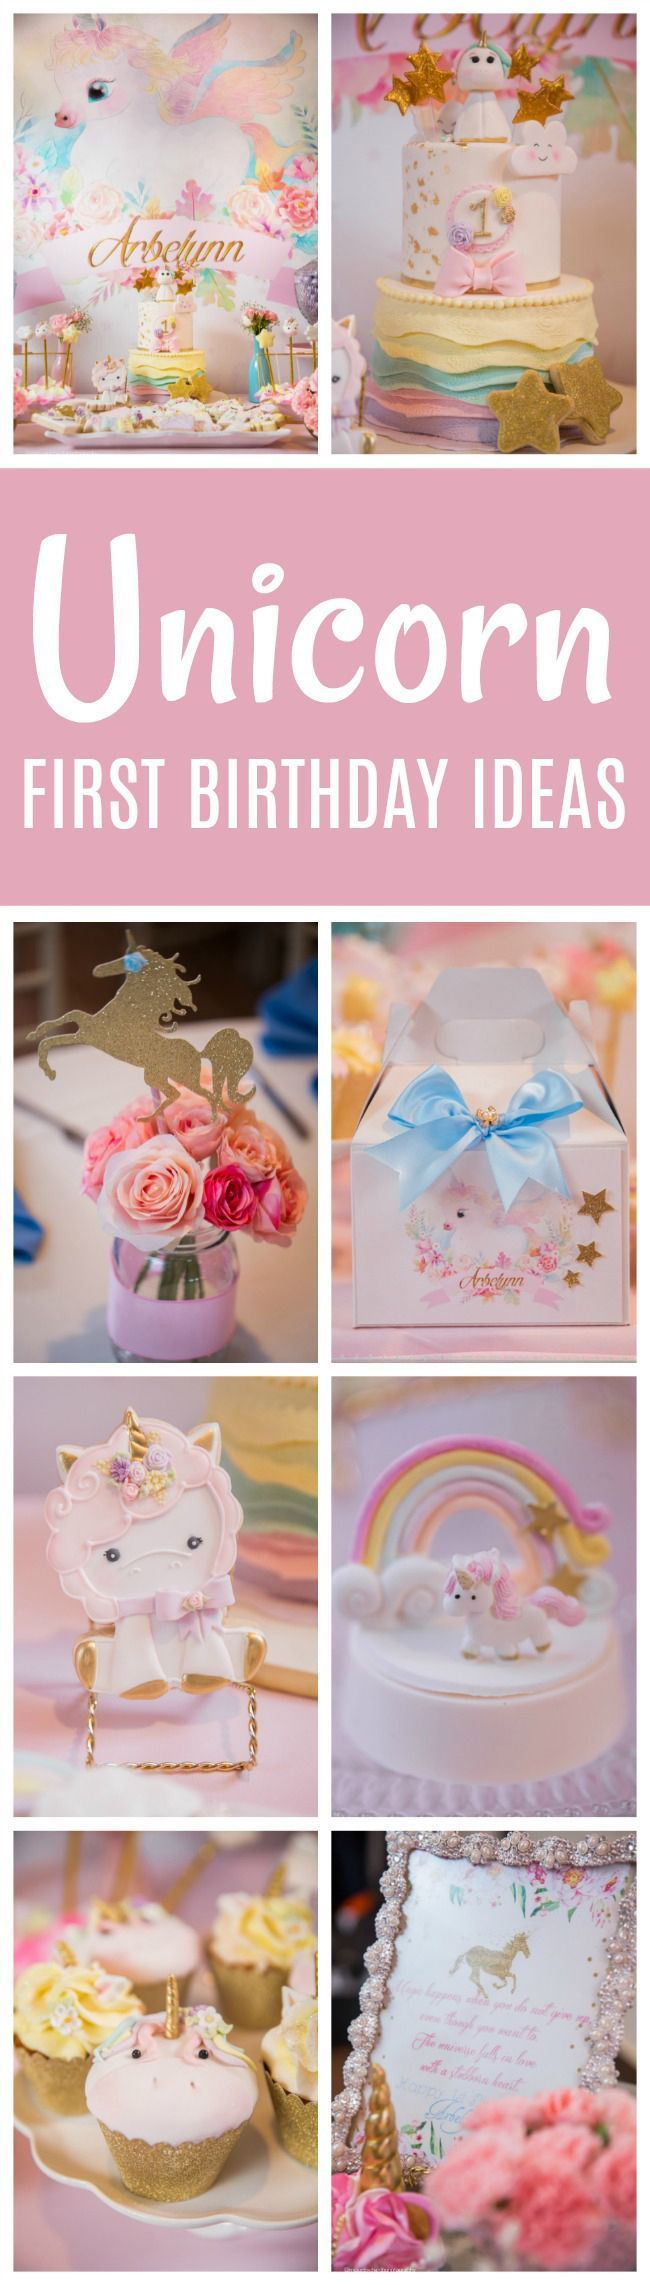 Baby Unicorn Themed First Birthday Party 1987